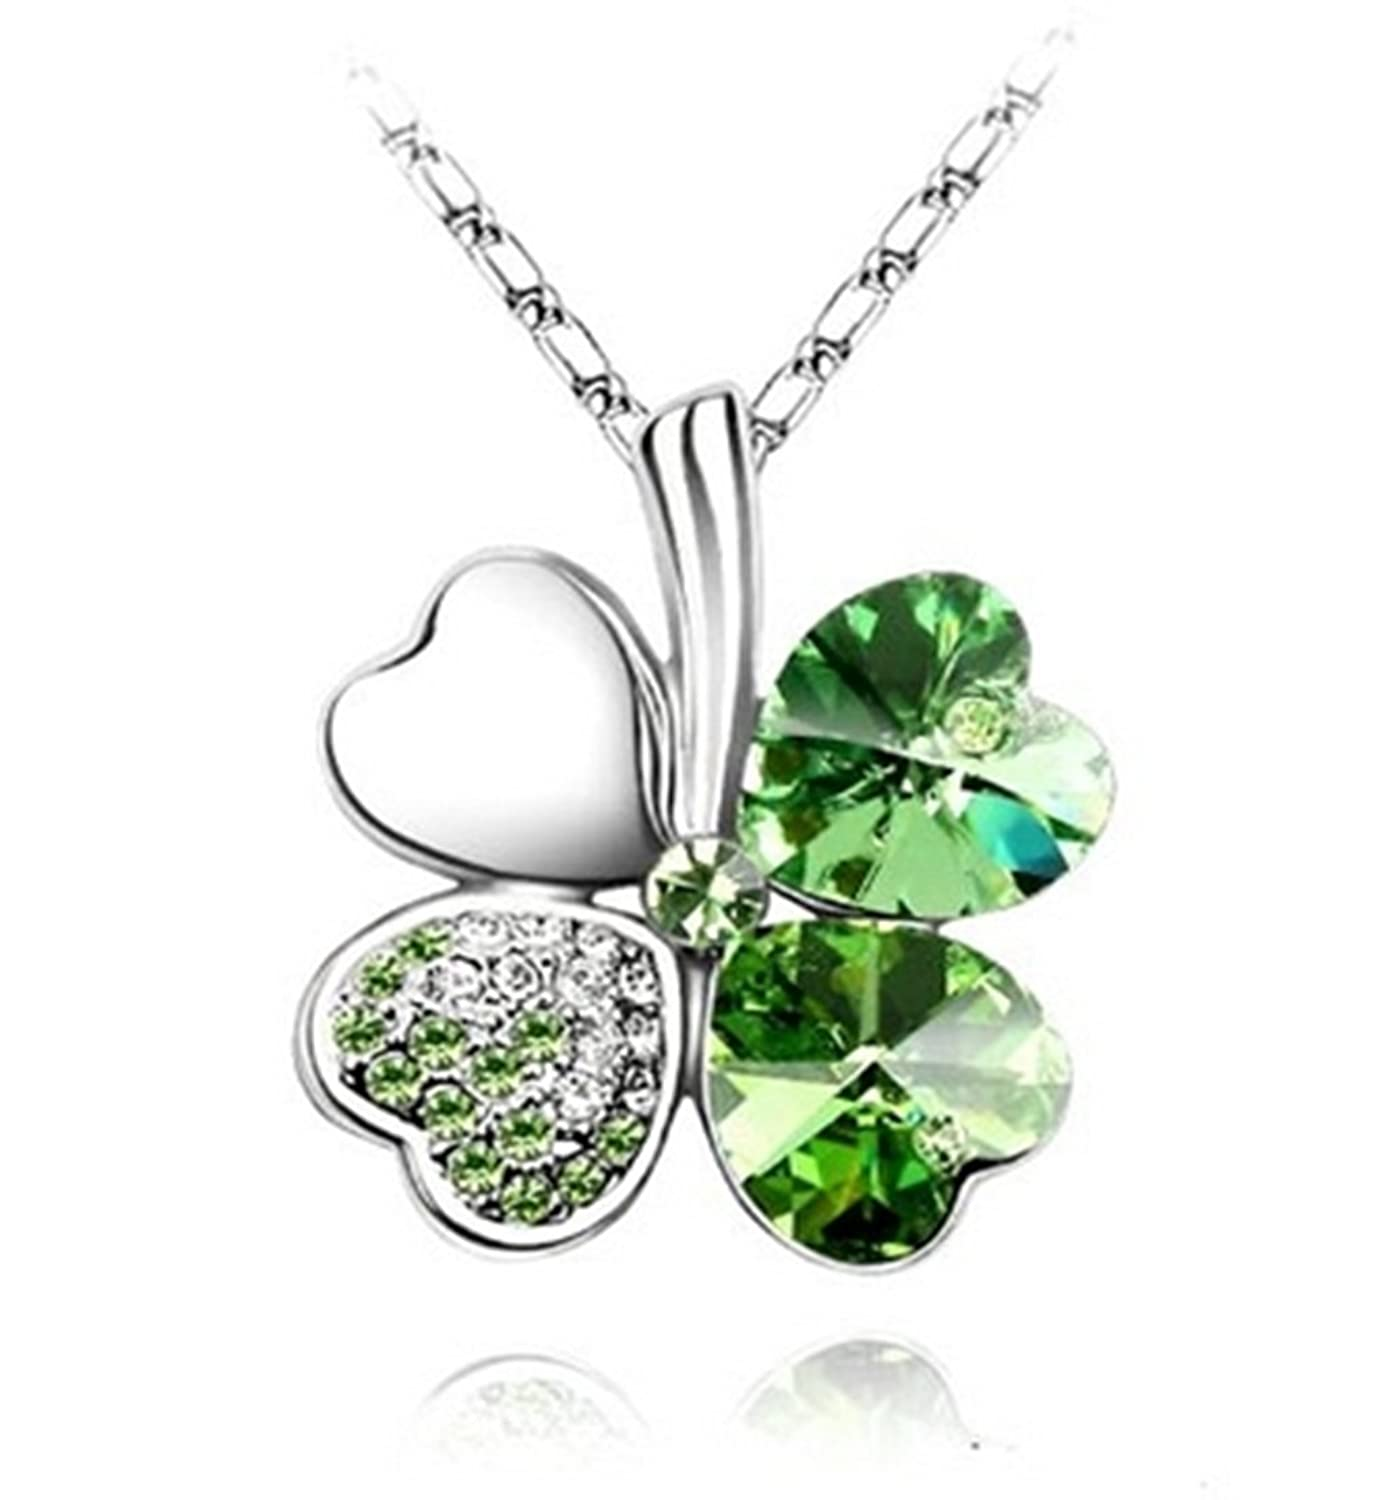 Green lucky shamrock necklace four leaf clover charm emerald green - Sheclub Green Crystal Four Leaf Clover Heart Shape Pendant Swarovski Elements Necklace With 18 Chain Amazon Co Uk Jewellery